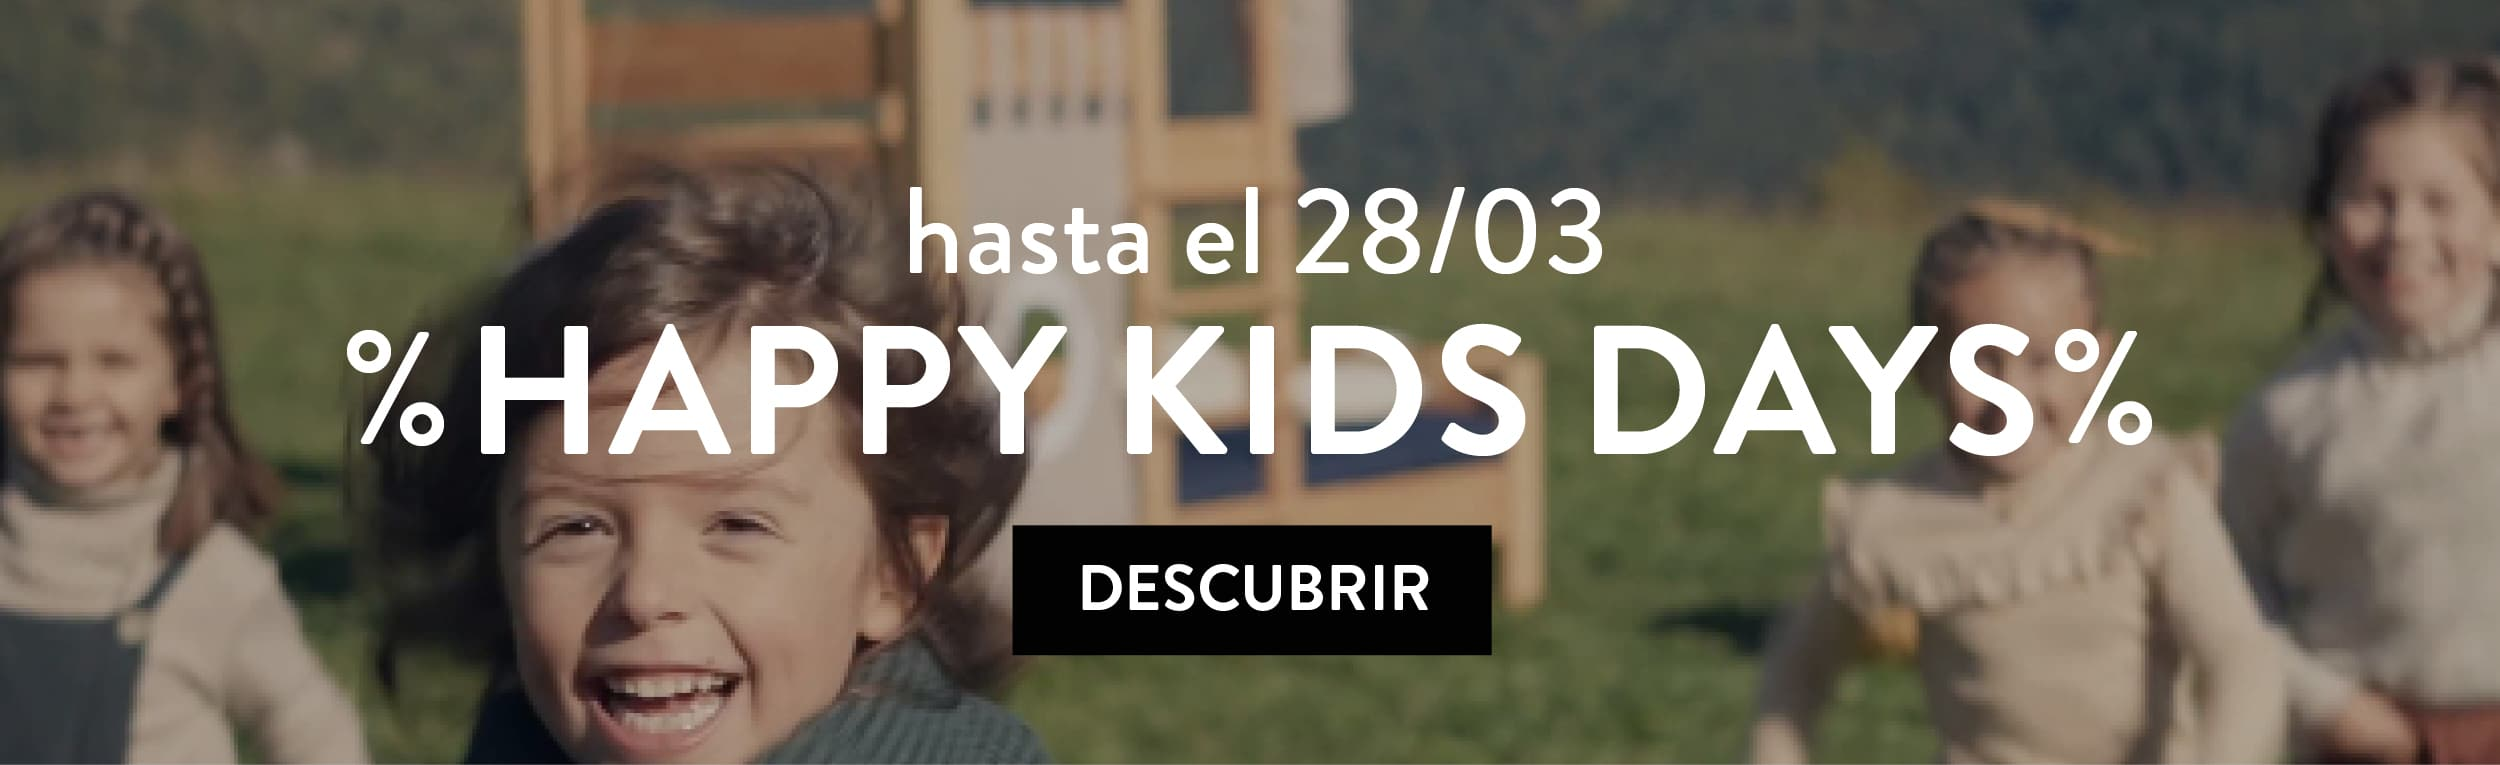 happy kids days